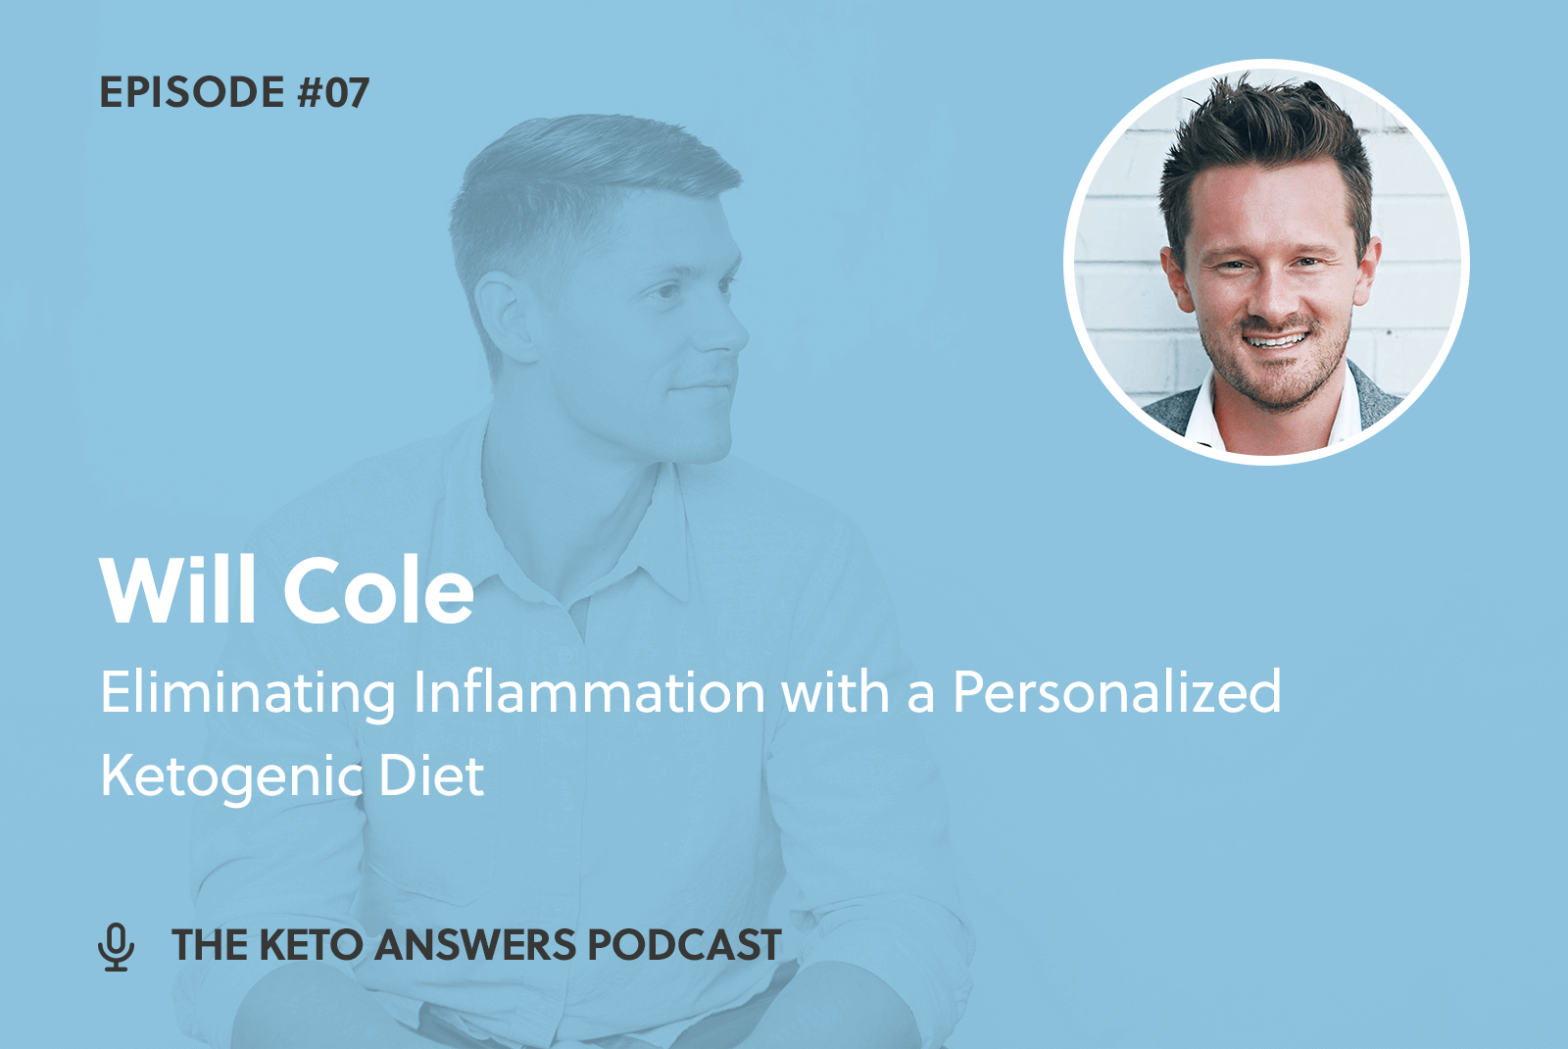 007: Eliminating Inflammation with a Personalized Ketogenic Diet - Dr. Will Cole